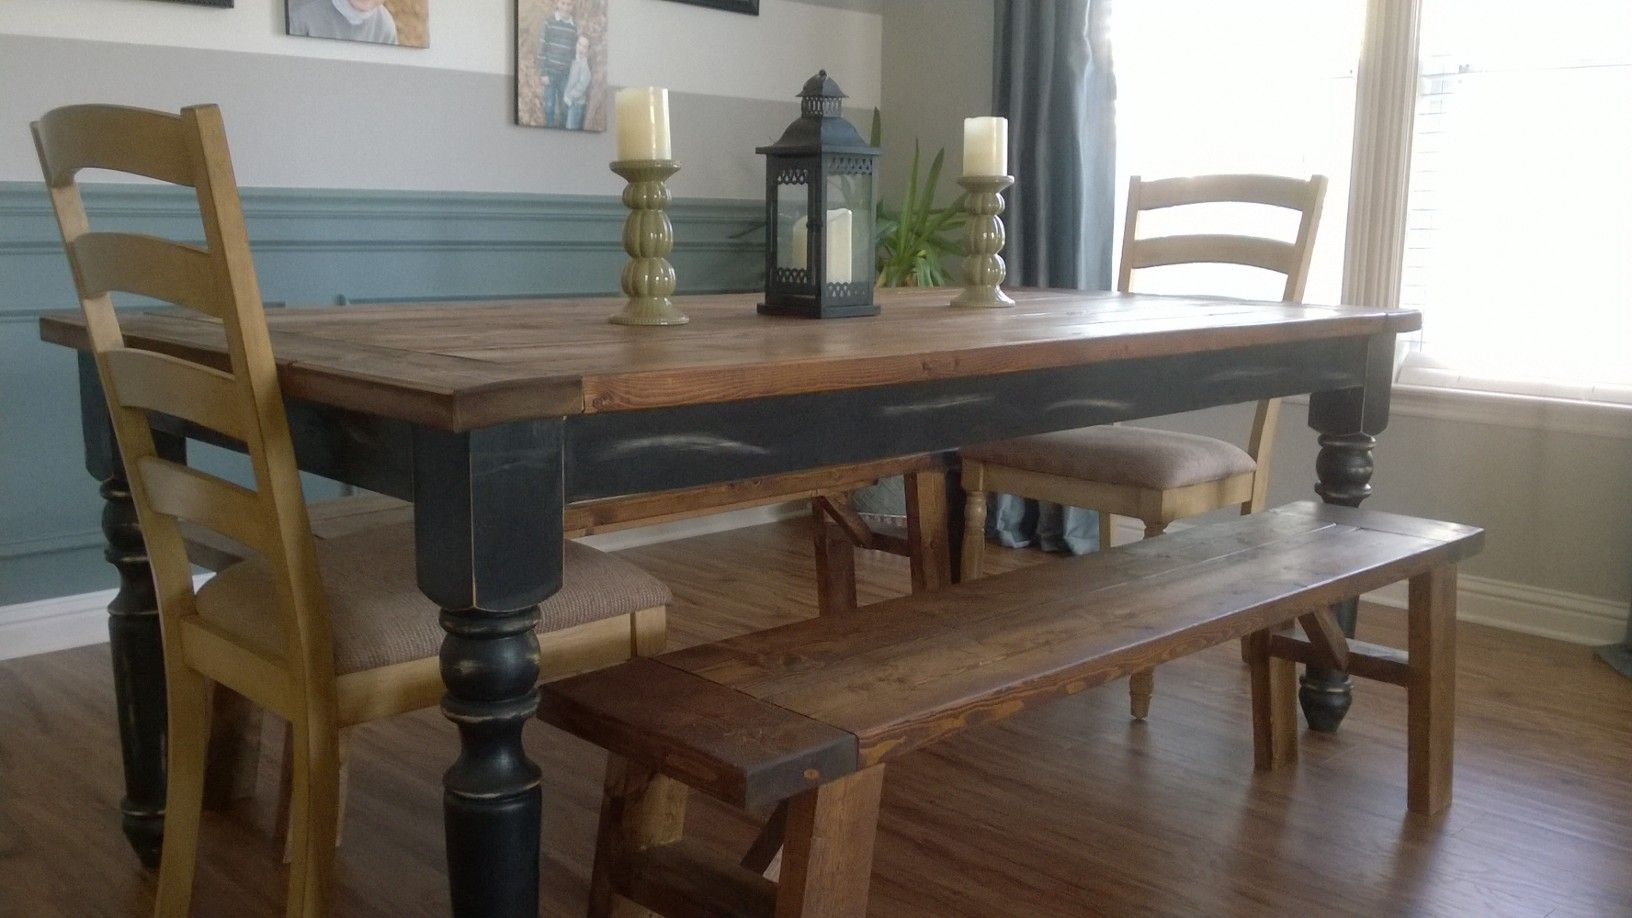 7ft. Farmhouse Table And Benches By Jennau0027s Farmhouse Designu0027s. (chairs  Purchased Separately)